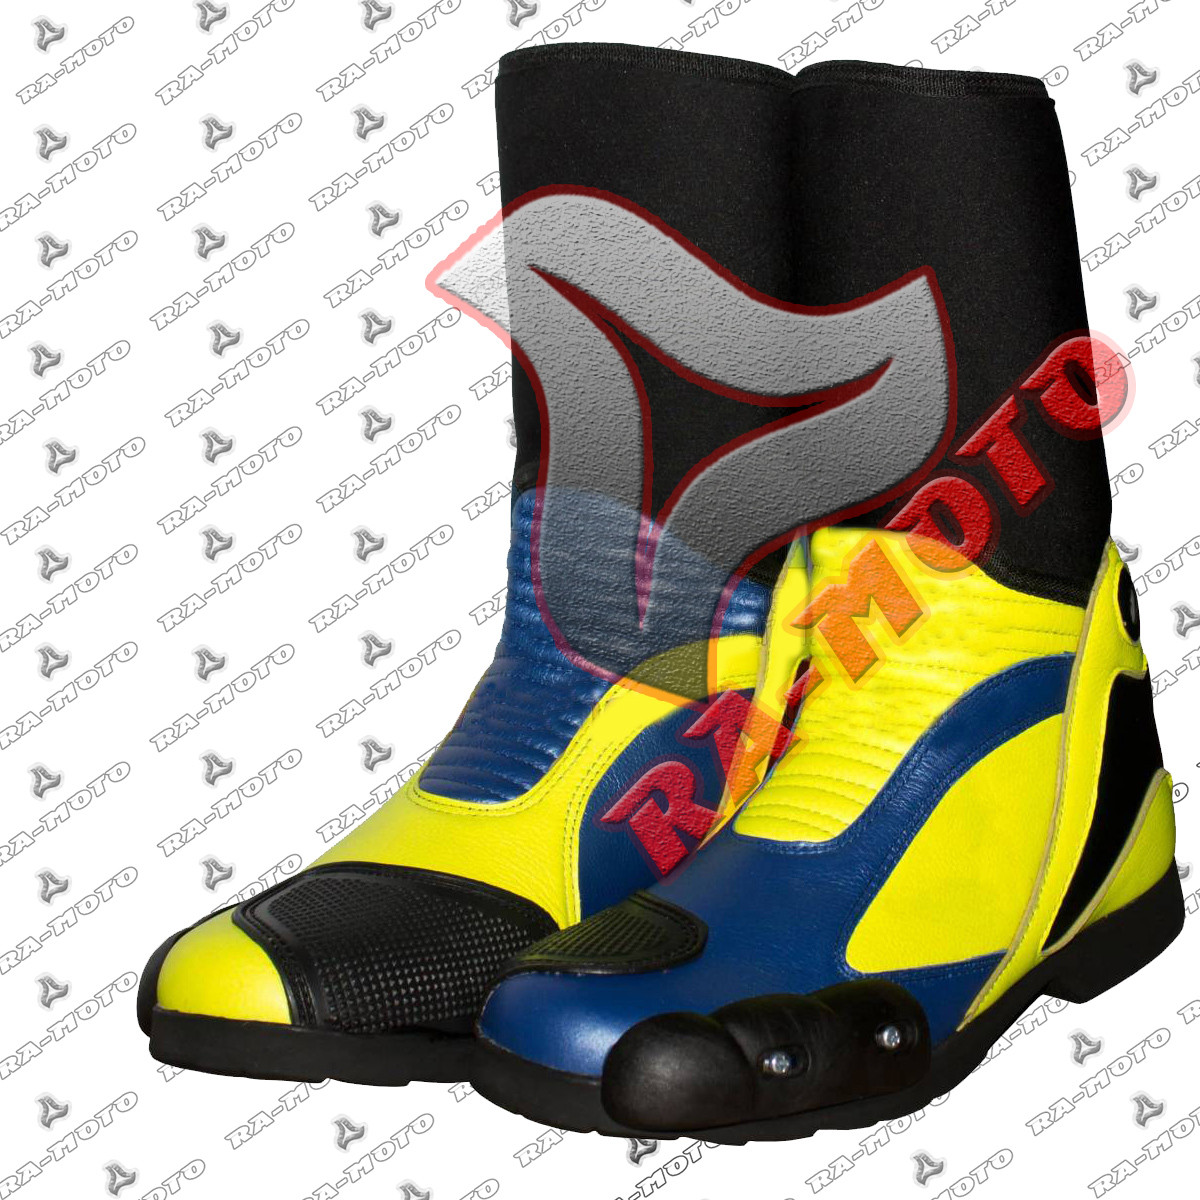 RA-15227 Valentino Rossi 2014 Motorcycle Race Boots